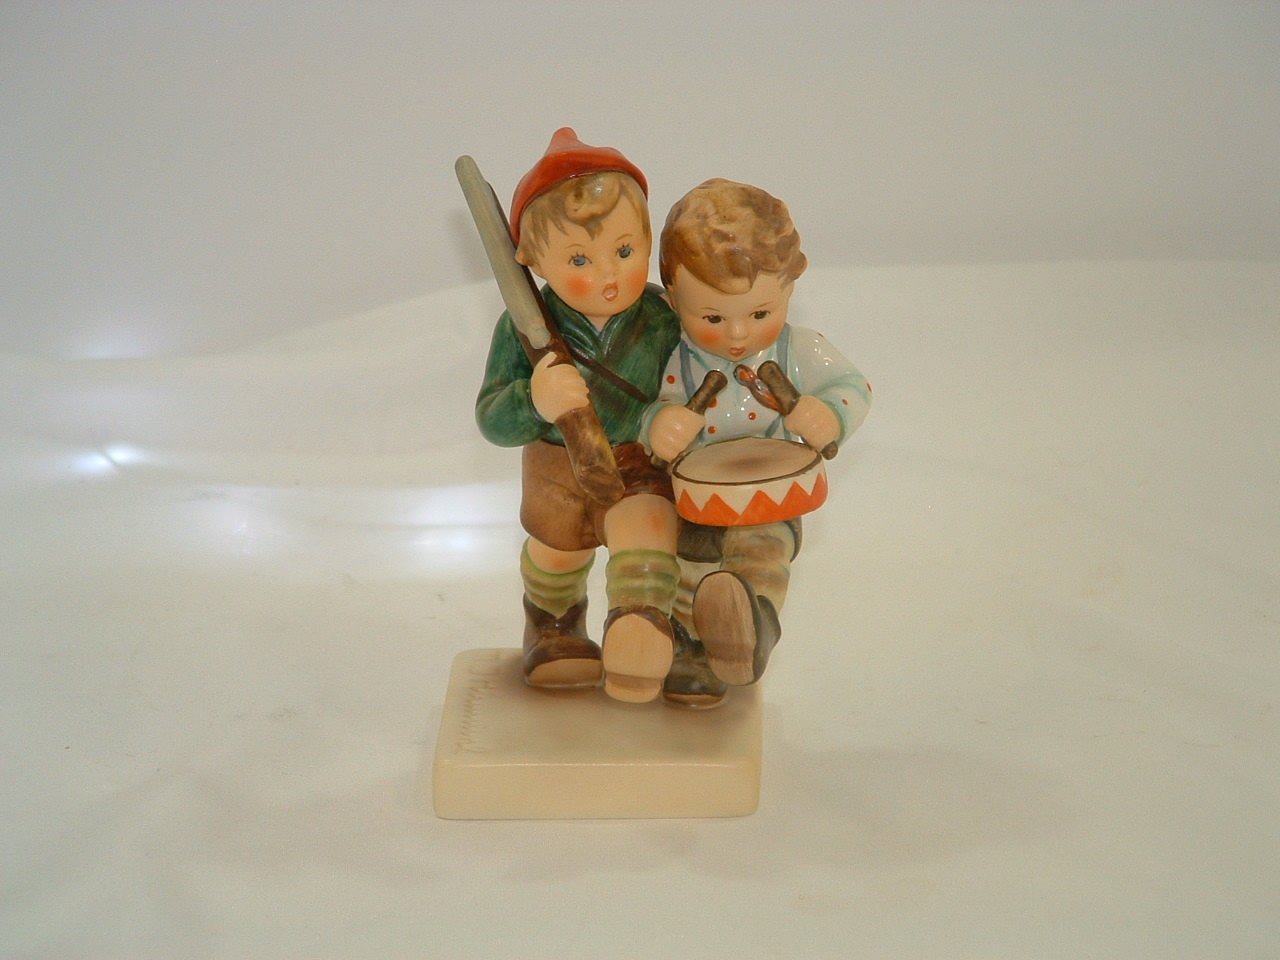 Hummel Goebel Germany Crossroads Figurine with American & German Flags